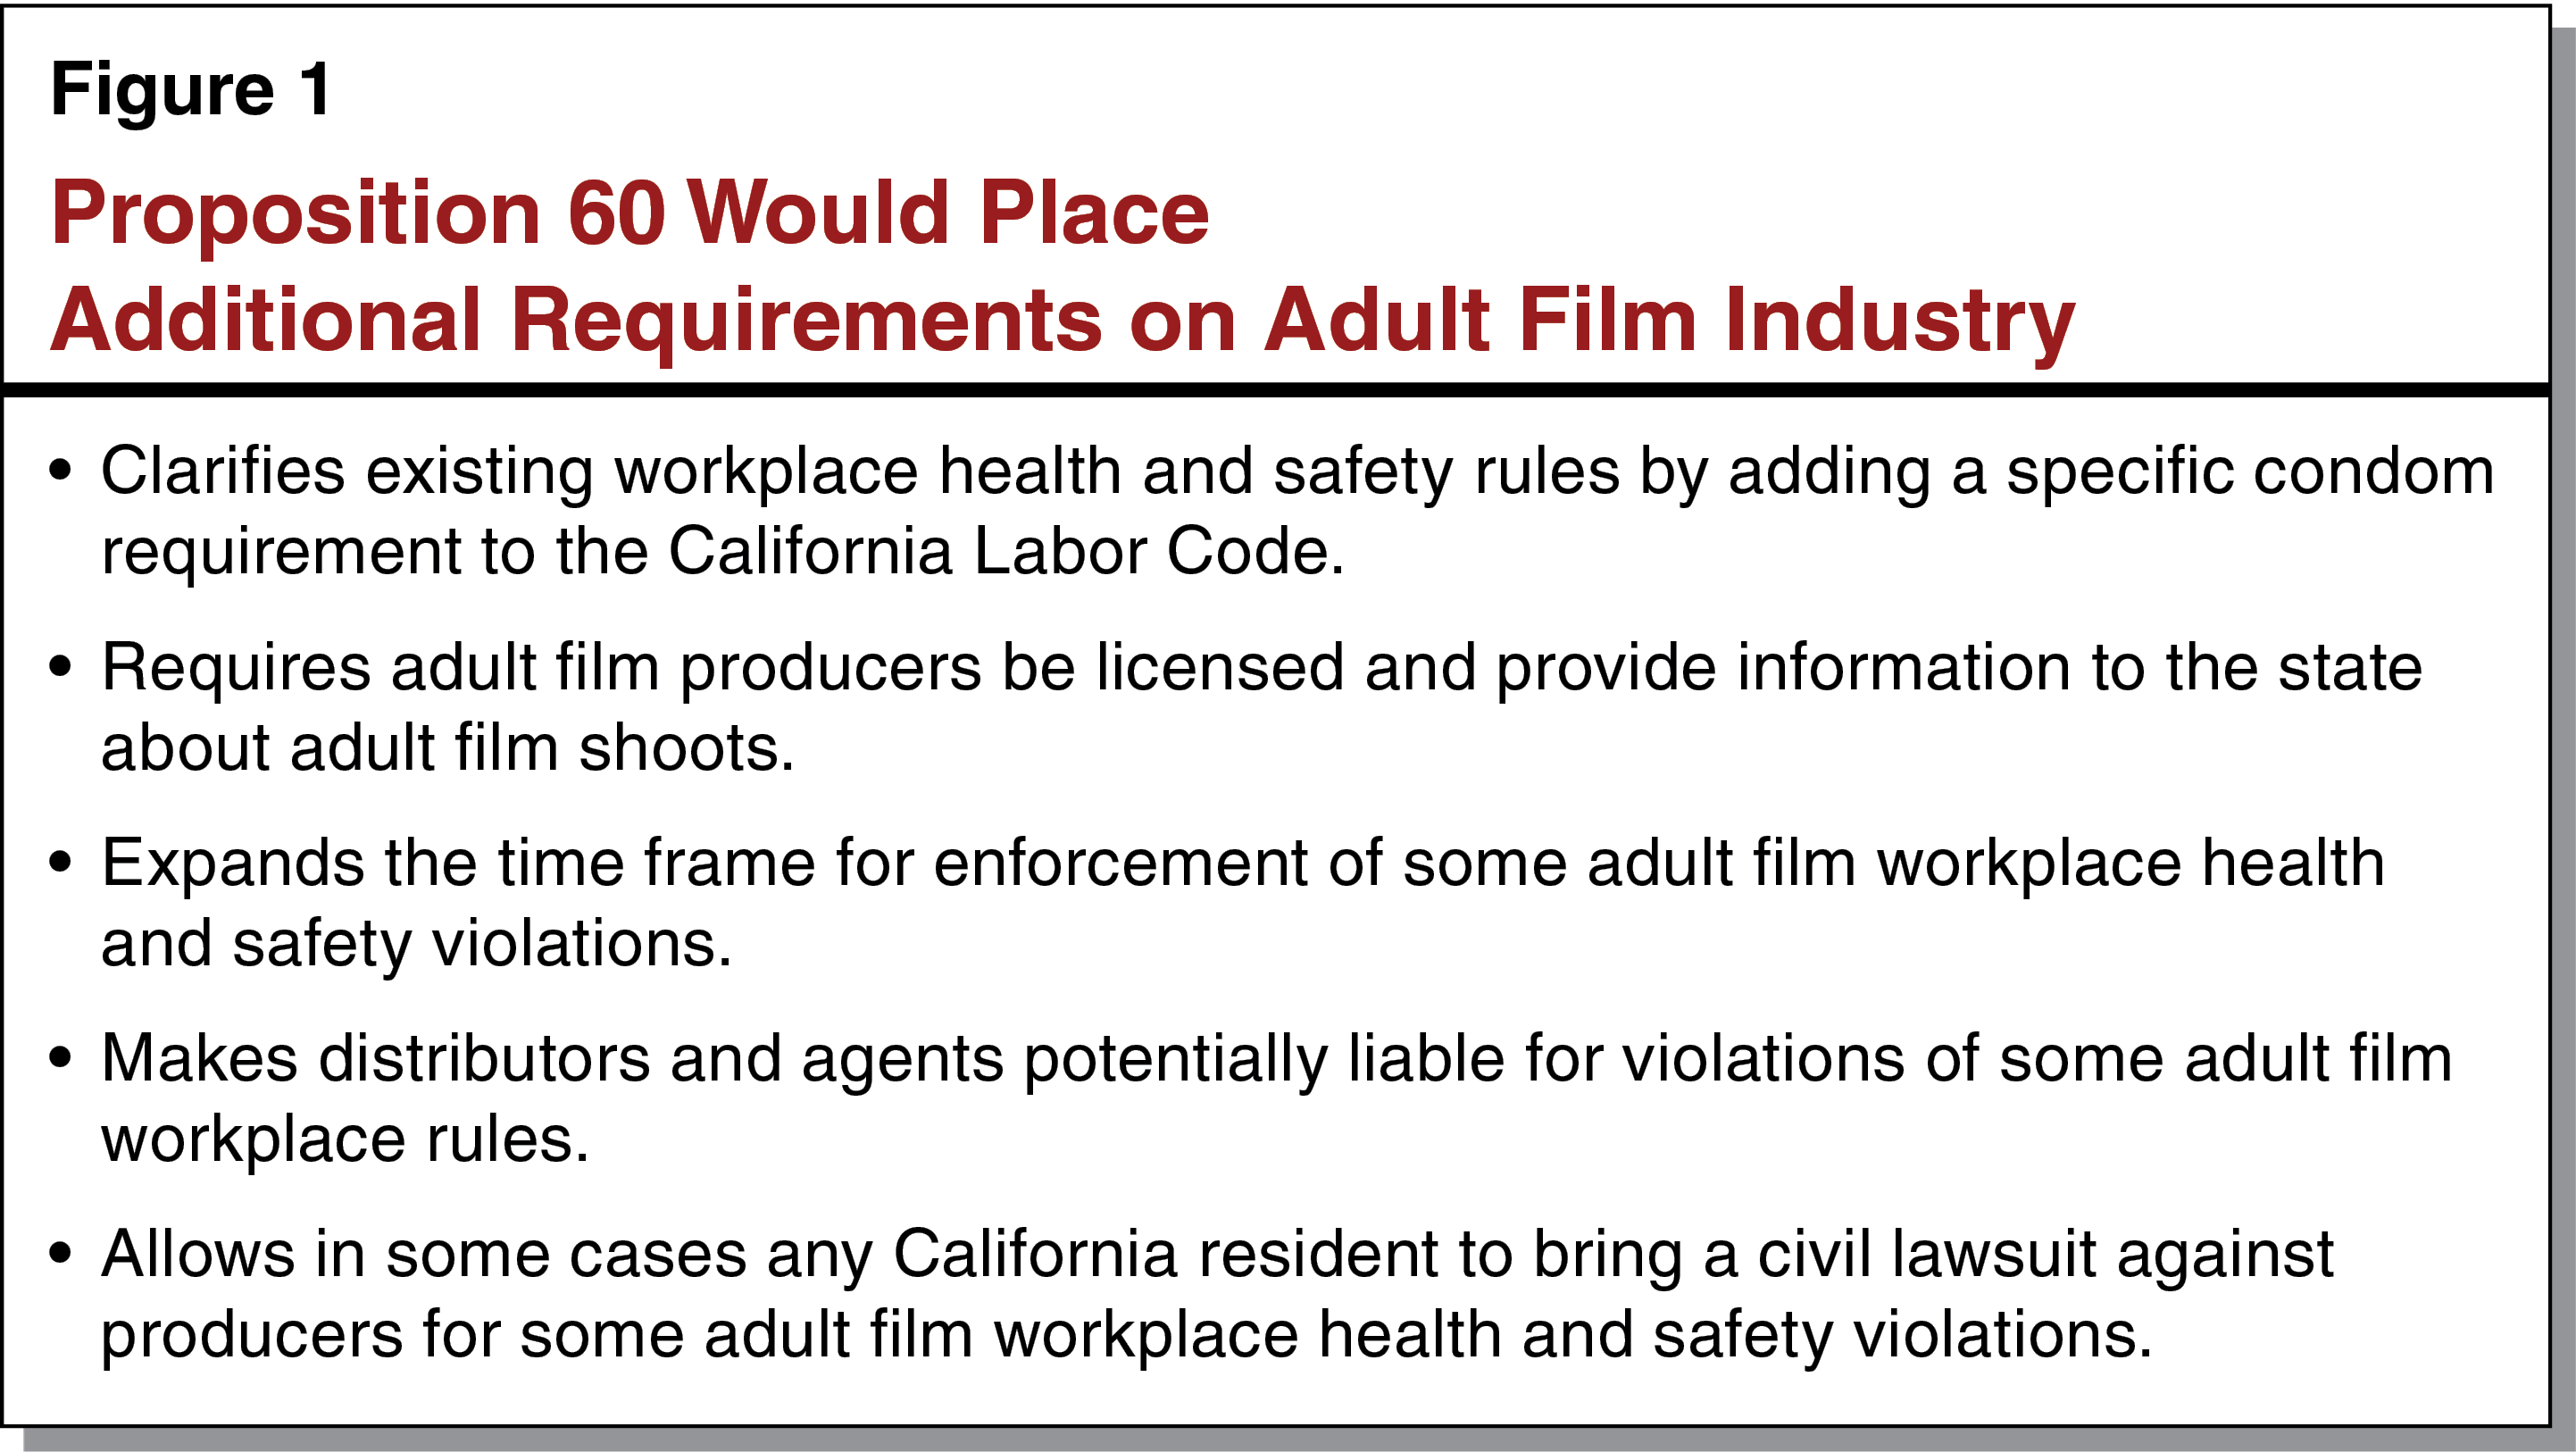 Figure 1 - Proposition 60 Would Place Additional Requirements on Adult Film Industry